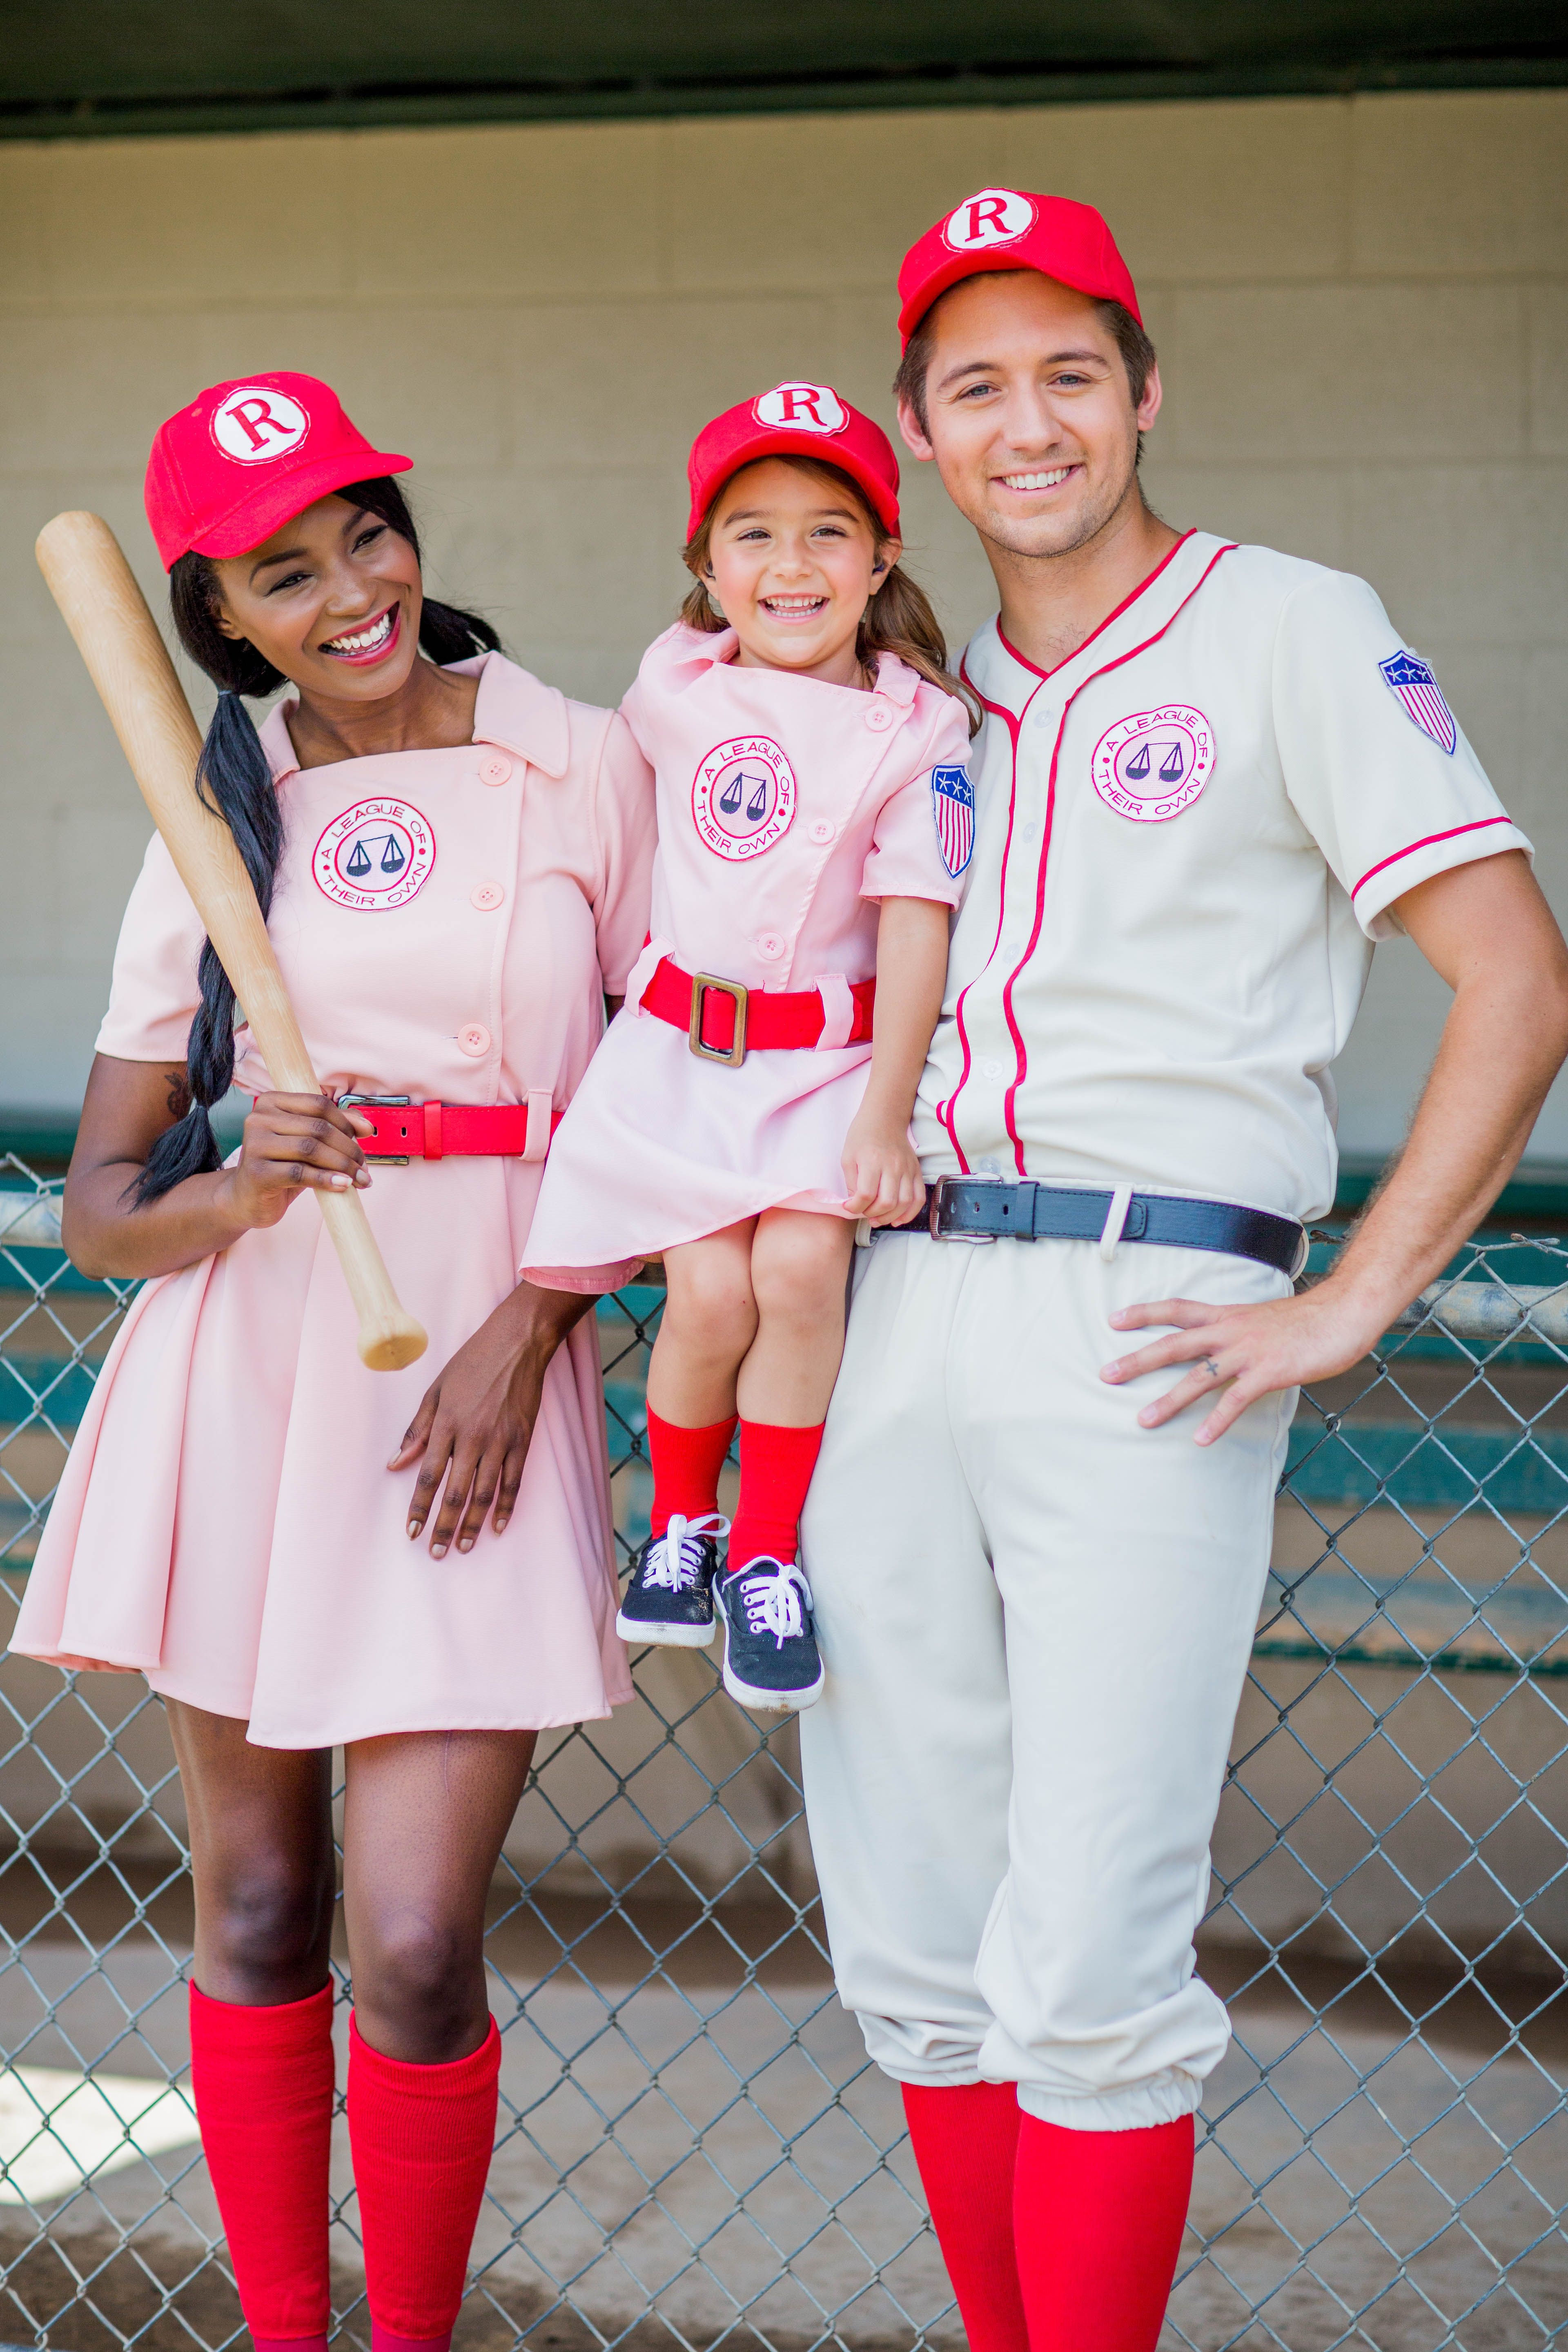 Family halloween costume ideas get your team together and hit the